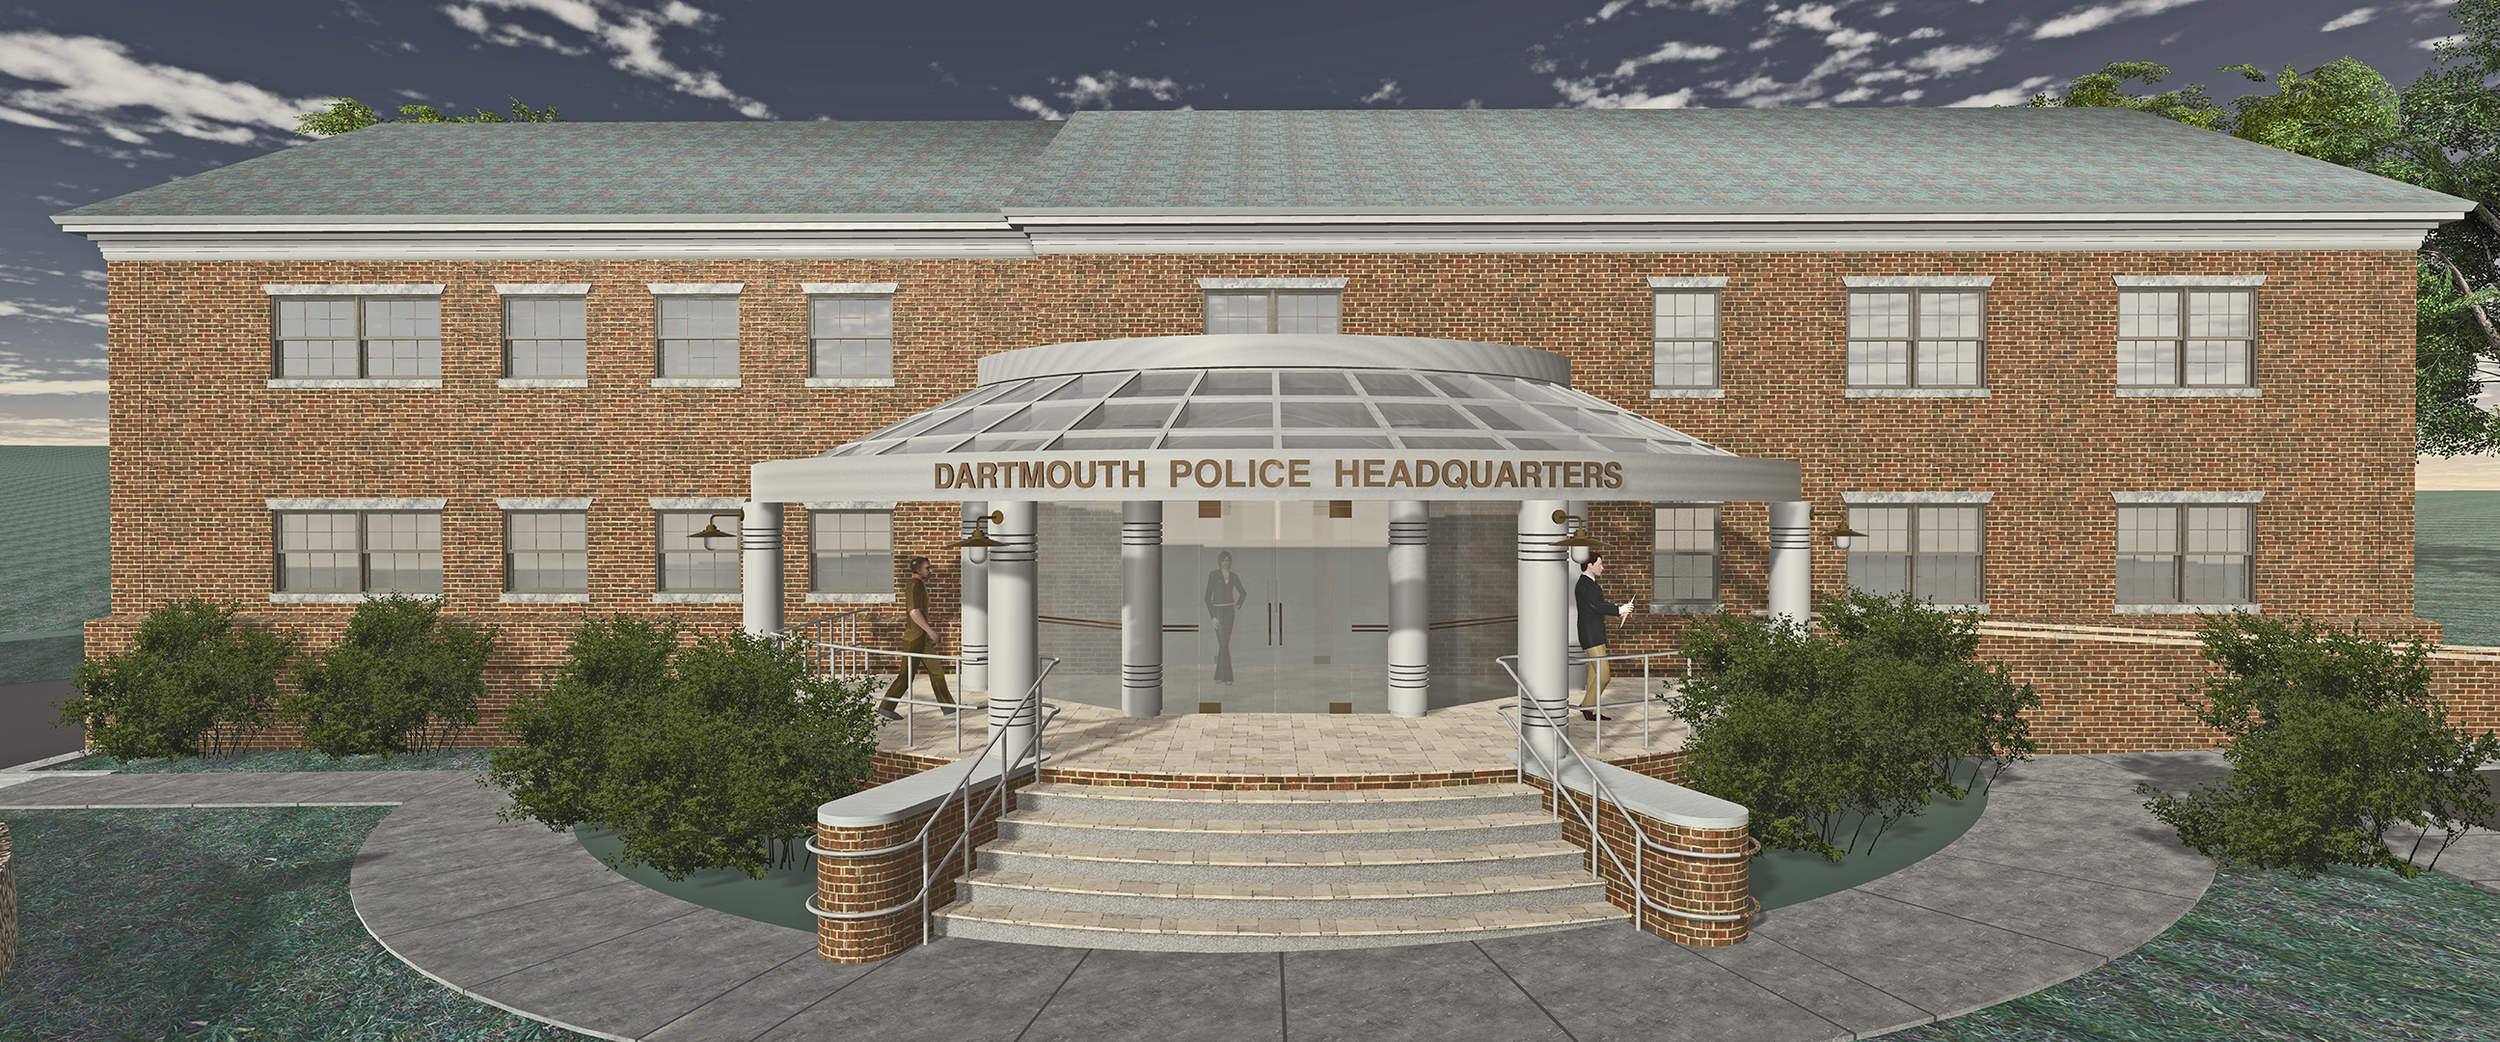 Dartmouth Police Headquarters